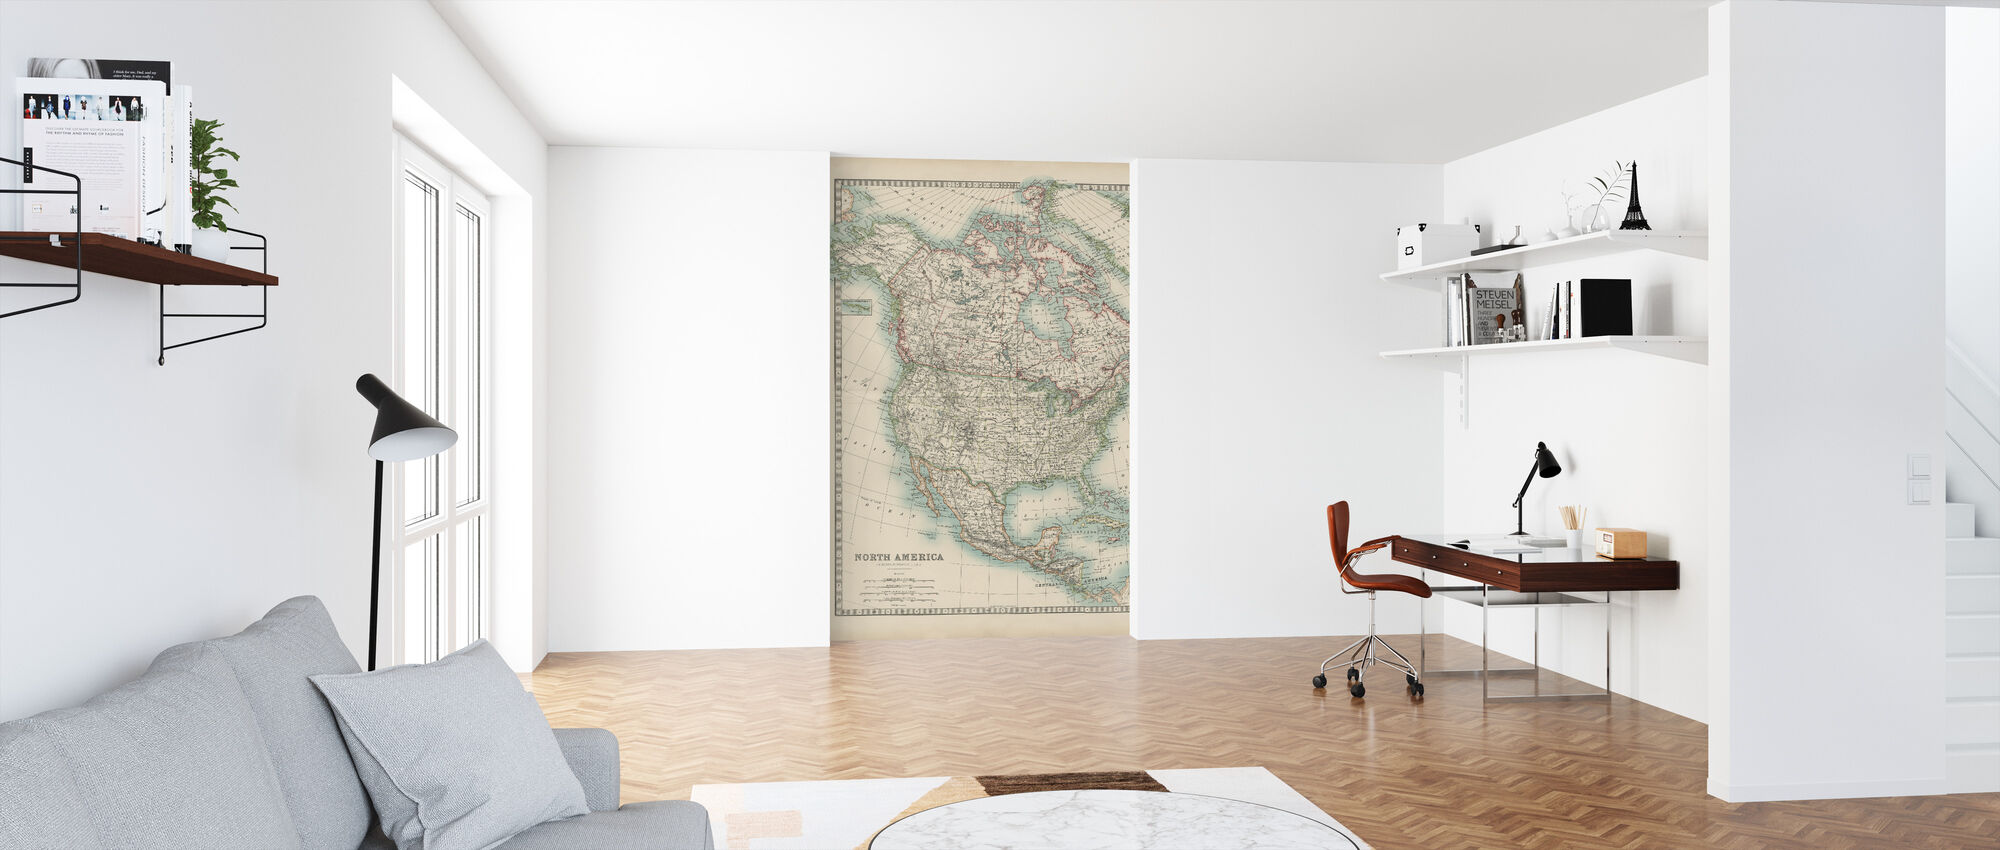 Johnstons Map of North America - Wallpaper - Office